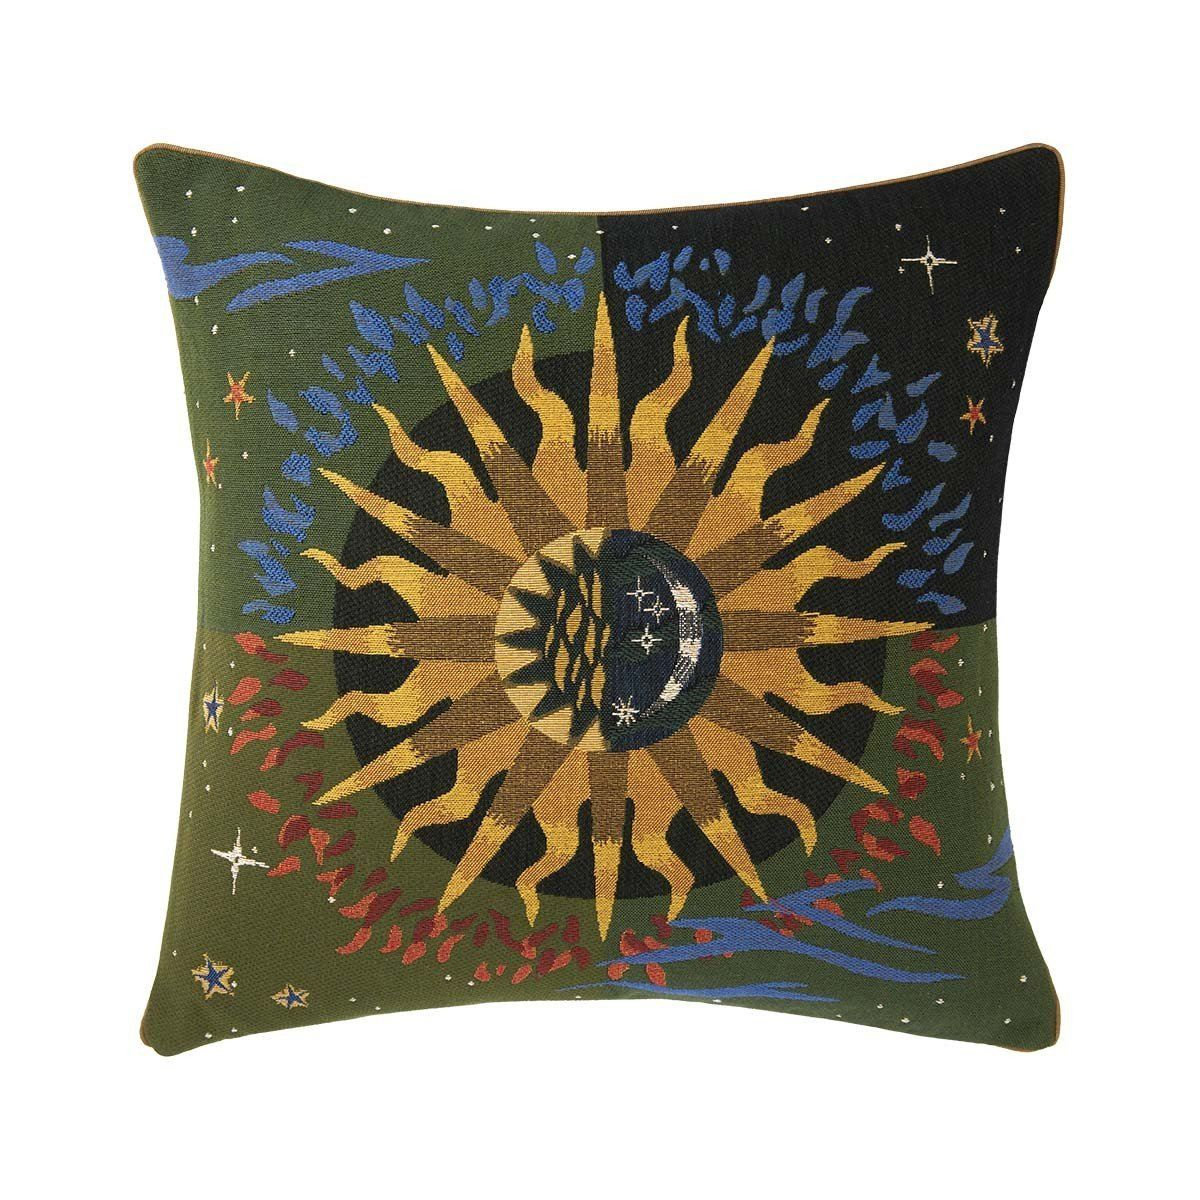 Soleil Vert Decorative Pillow by Iosis